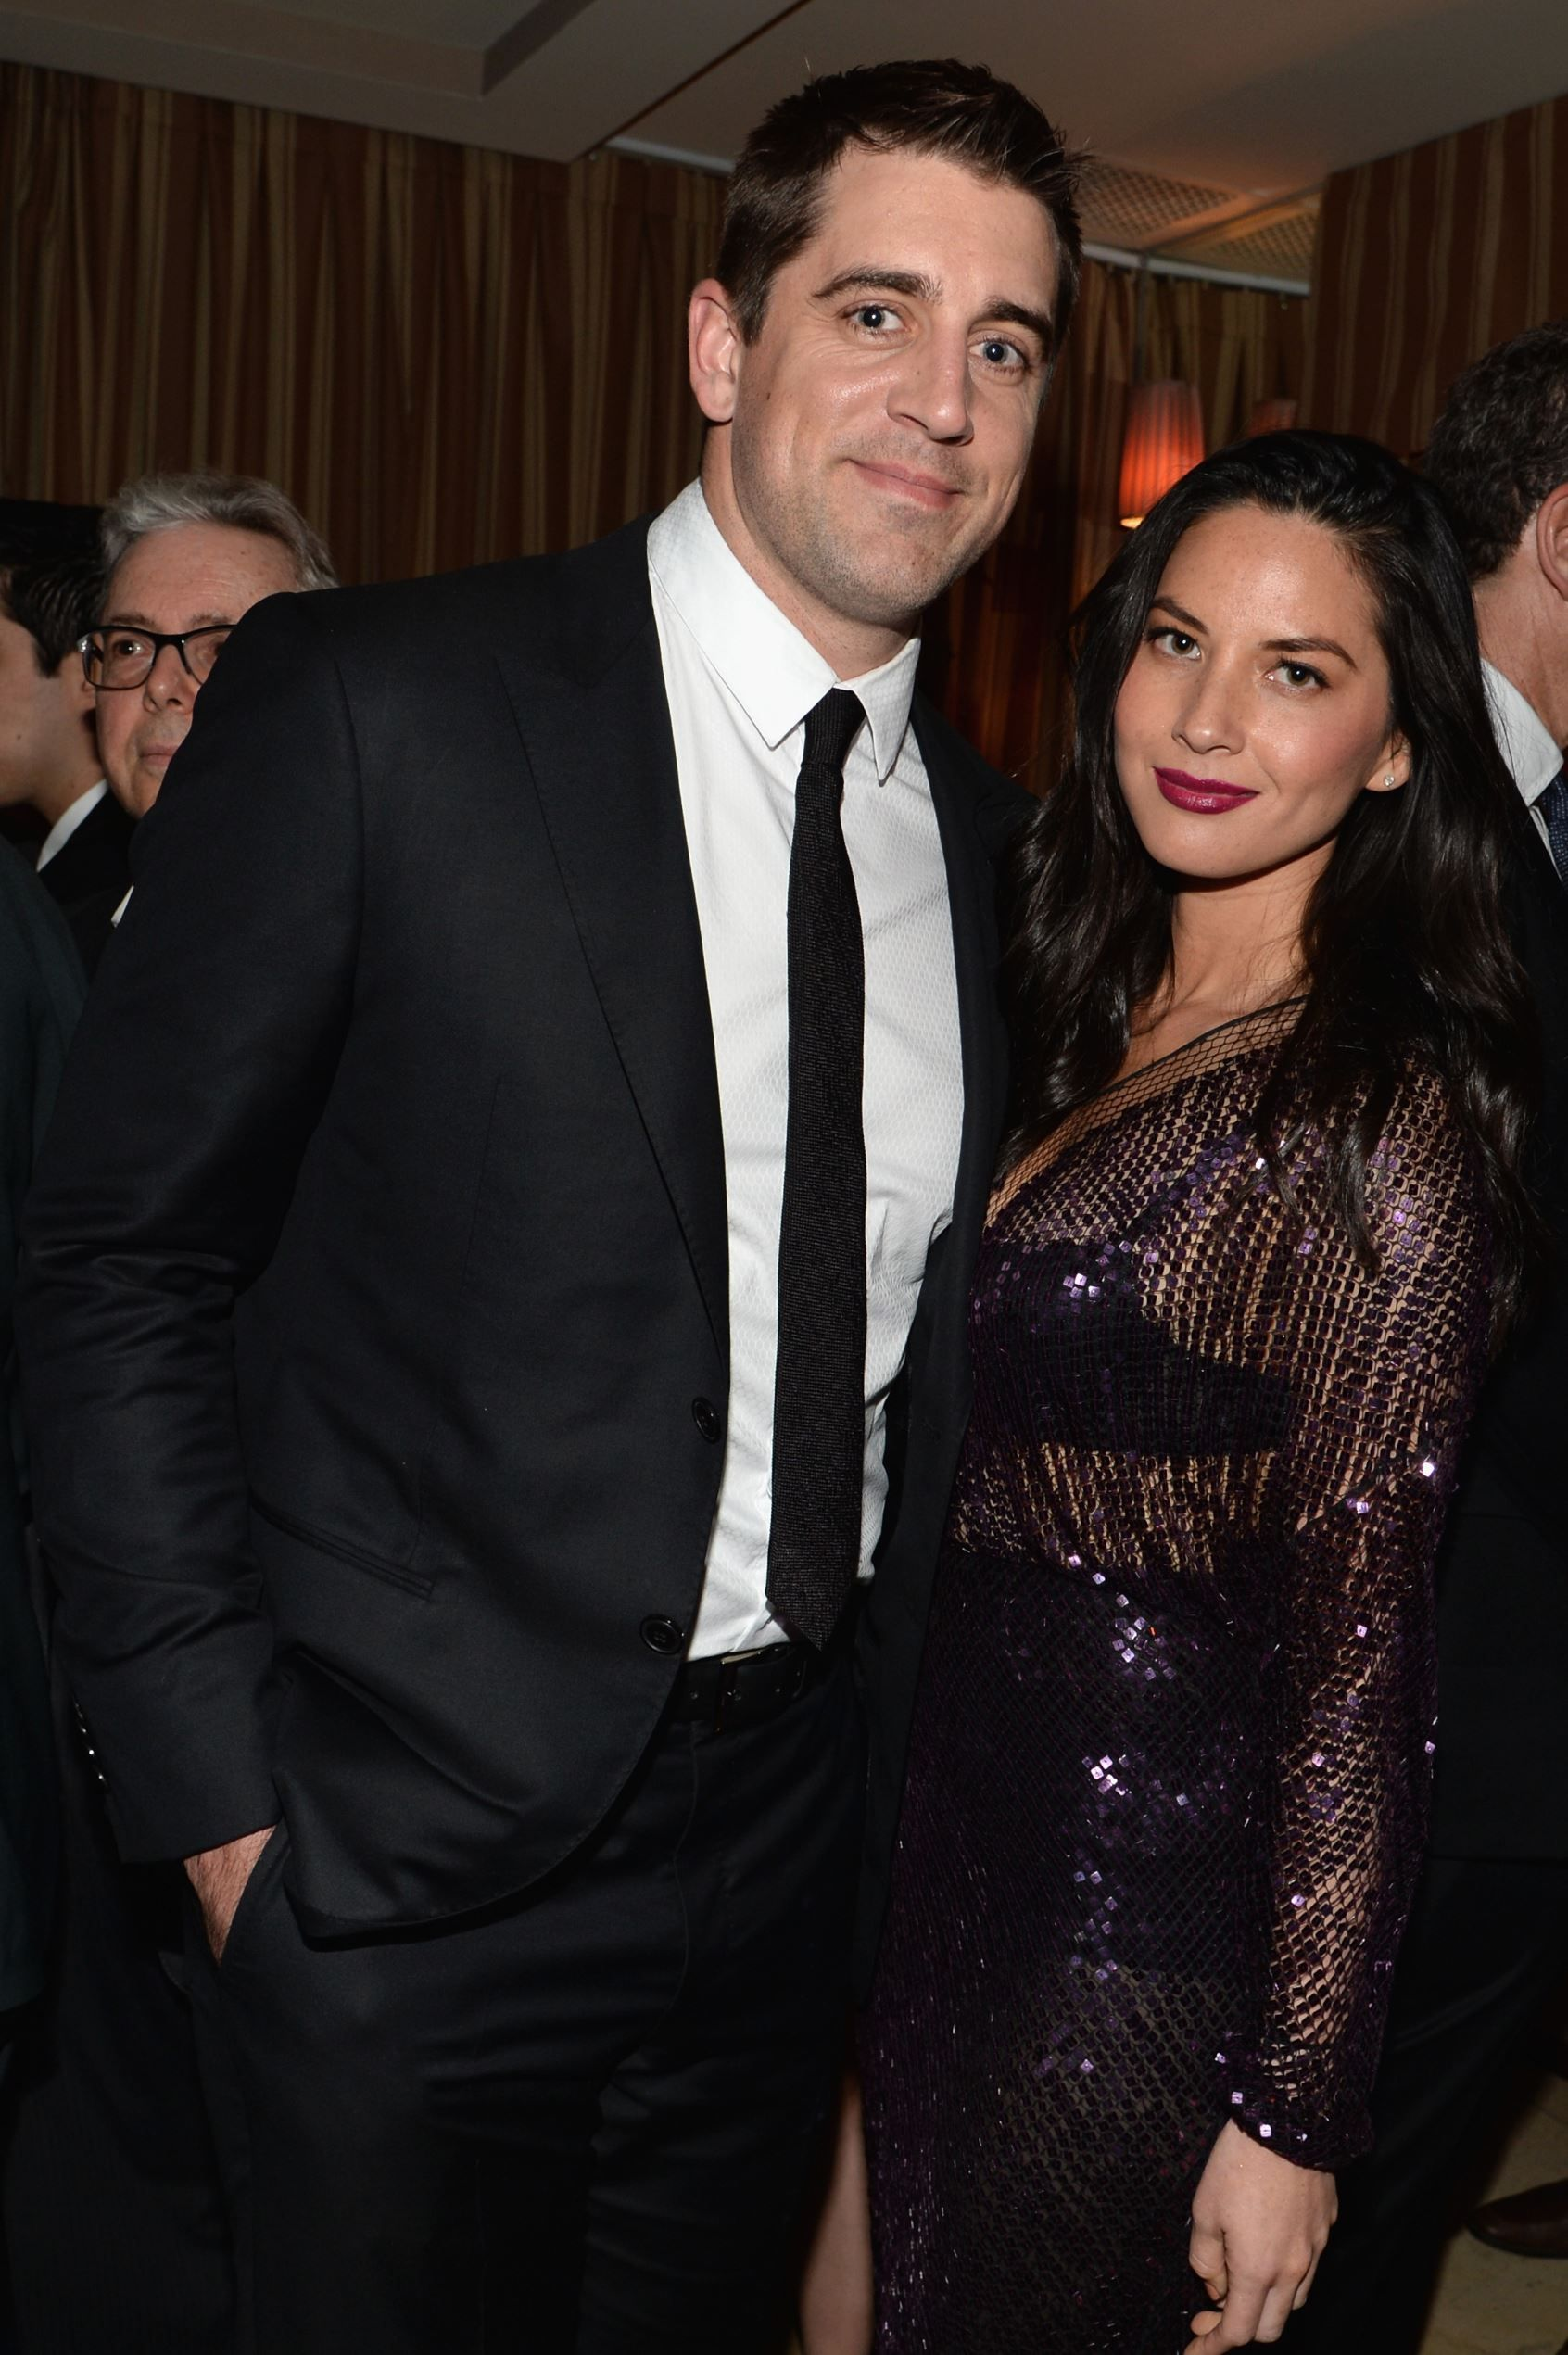 Olivia Munn And Aaron Rodgers Look Completely Smitten With Each Other During Pre Oscars Party Olivia Munn Aaron Rodgers Shirtless Aaron Rodgers